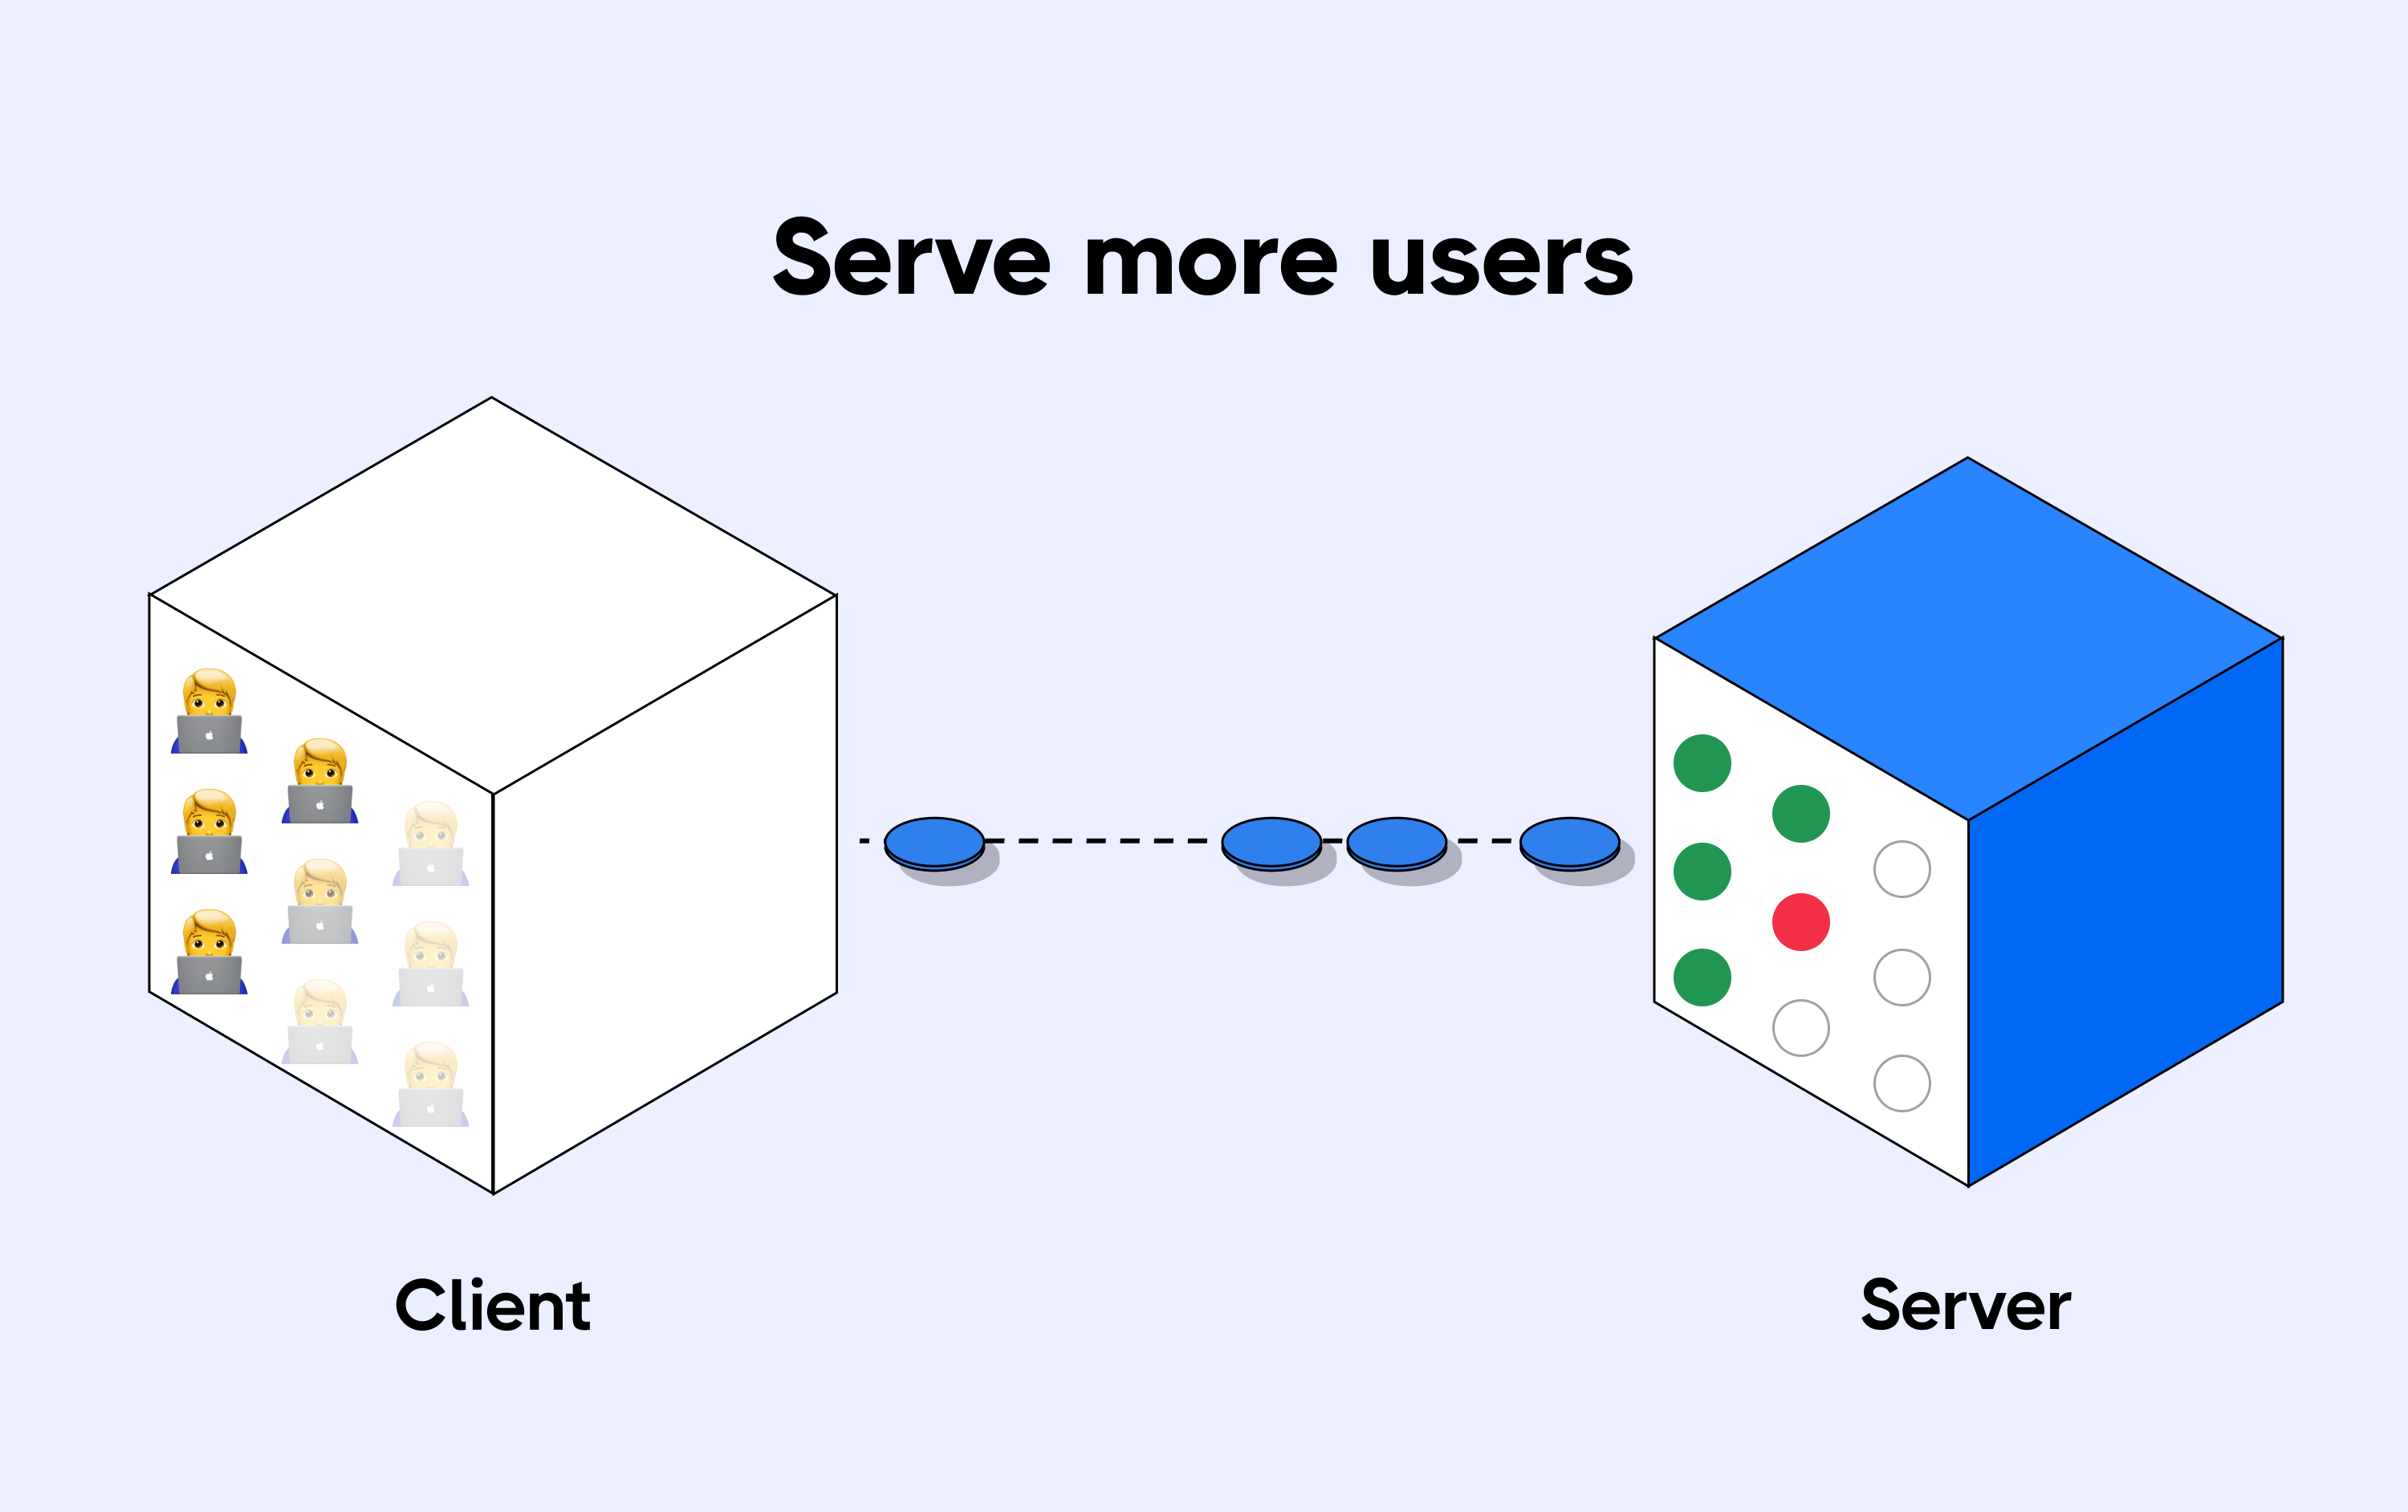 Scalability issues to serve more users